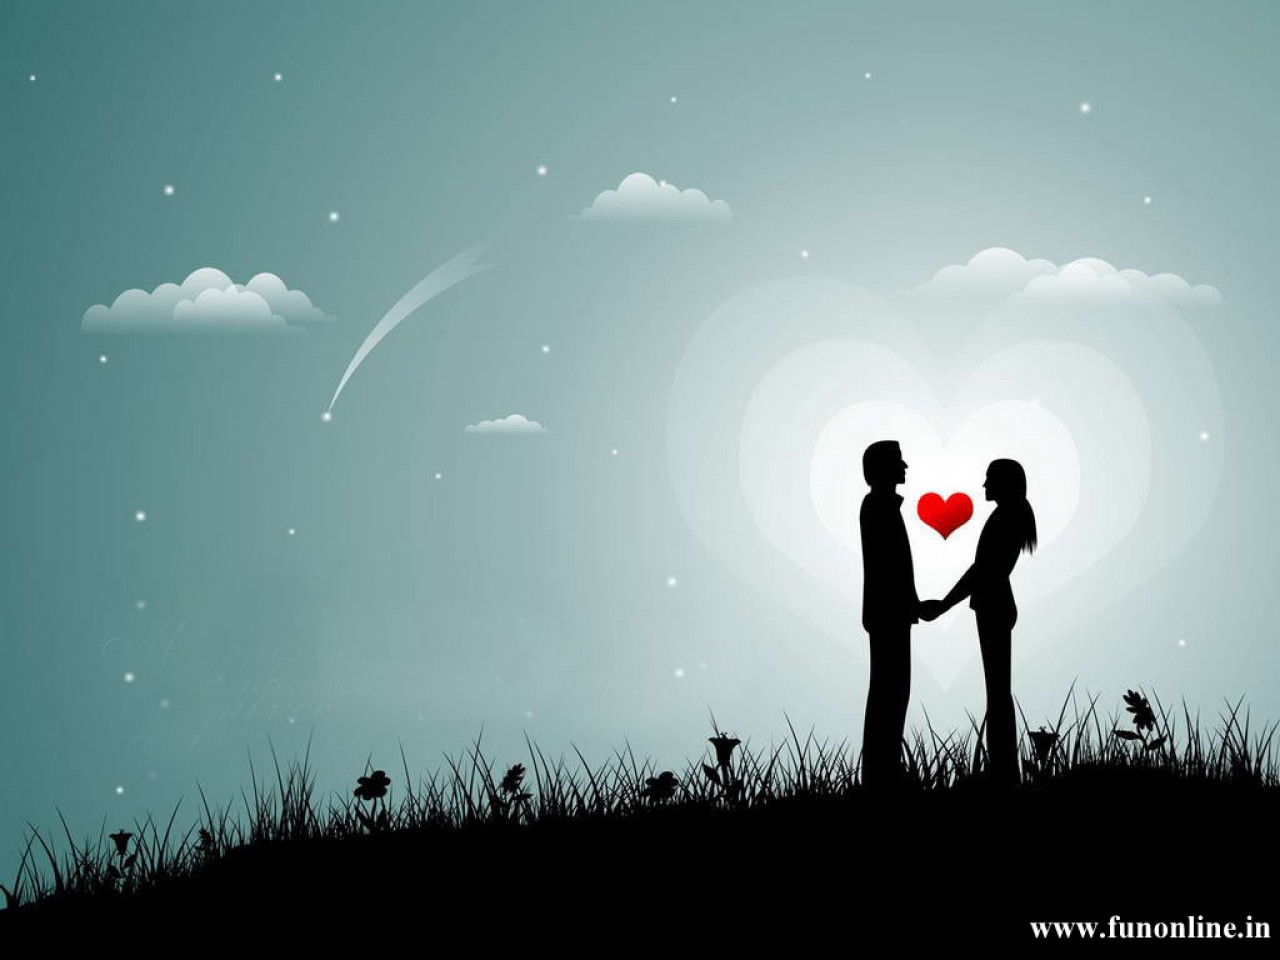 http://1.bp.blogspot.com/-IRS_HLN7hFY/UBUYUqwWsOI/AAAAAAAAIOY/grvTb1Imcsc/s1600/cute%20romantic%20couples%20in%20love%20wallpapers%20(2).jpg